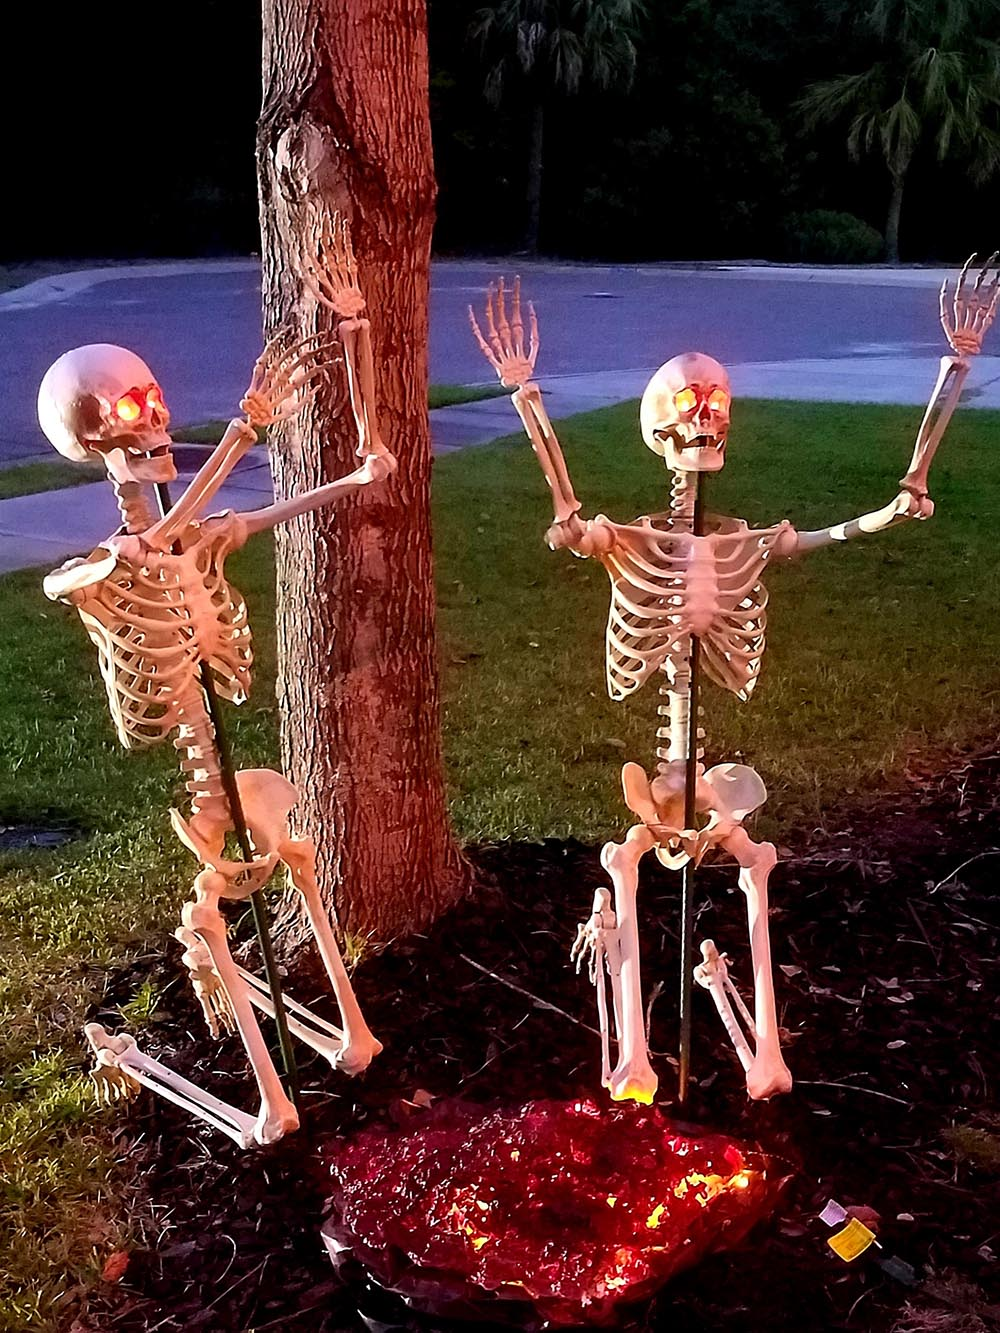 Two skeletons with glowing red eyes kneel in front of a fire.